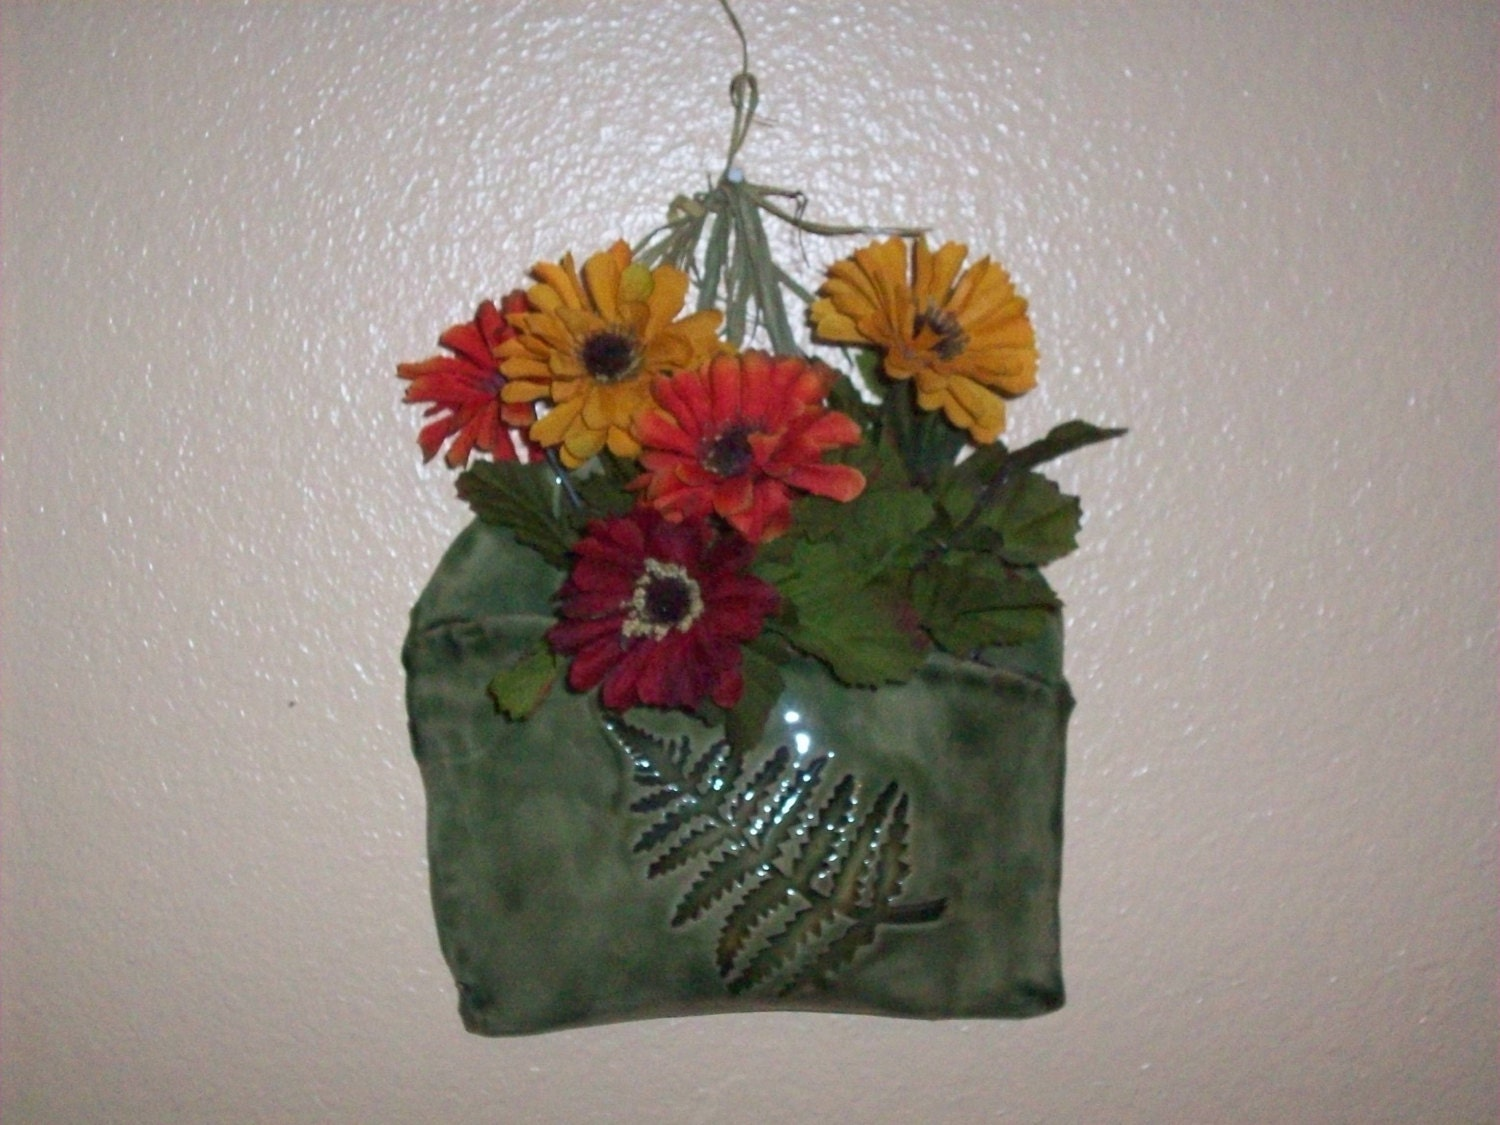 Wall Pocket Flower Holder Floral Sconce Ceramic by Clayworkz